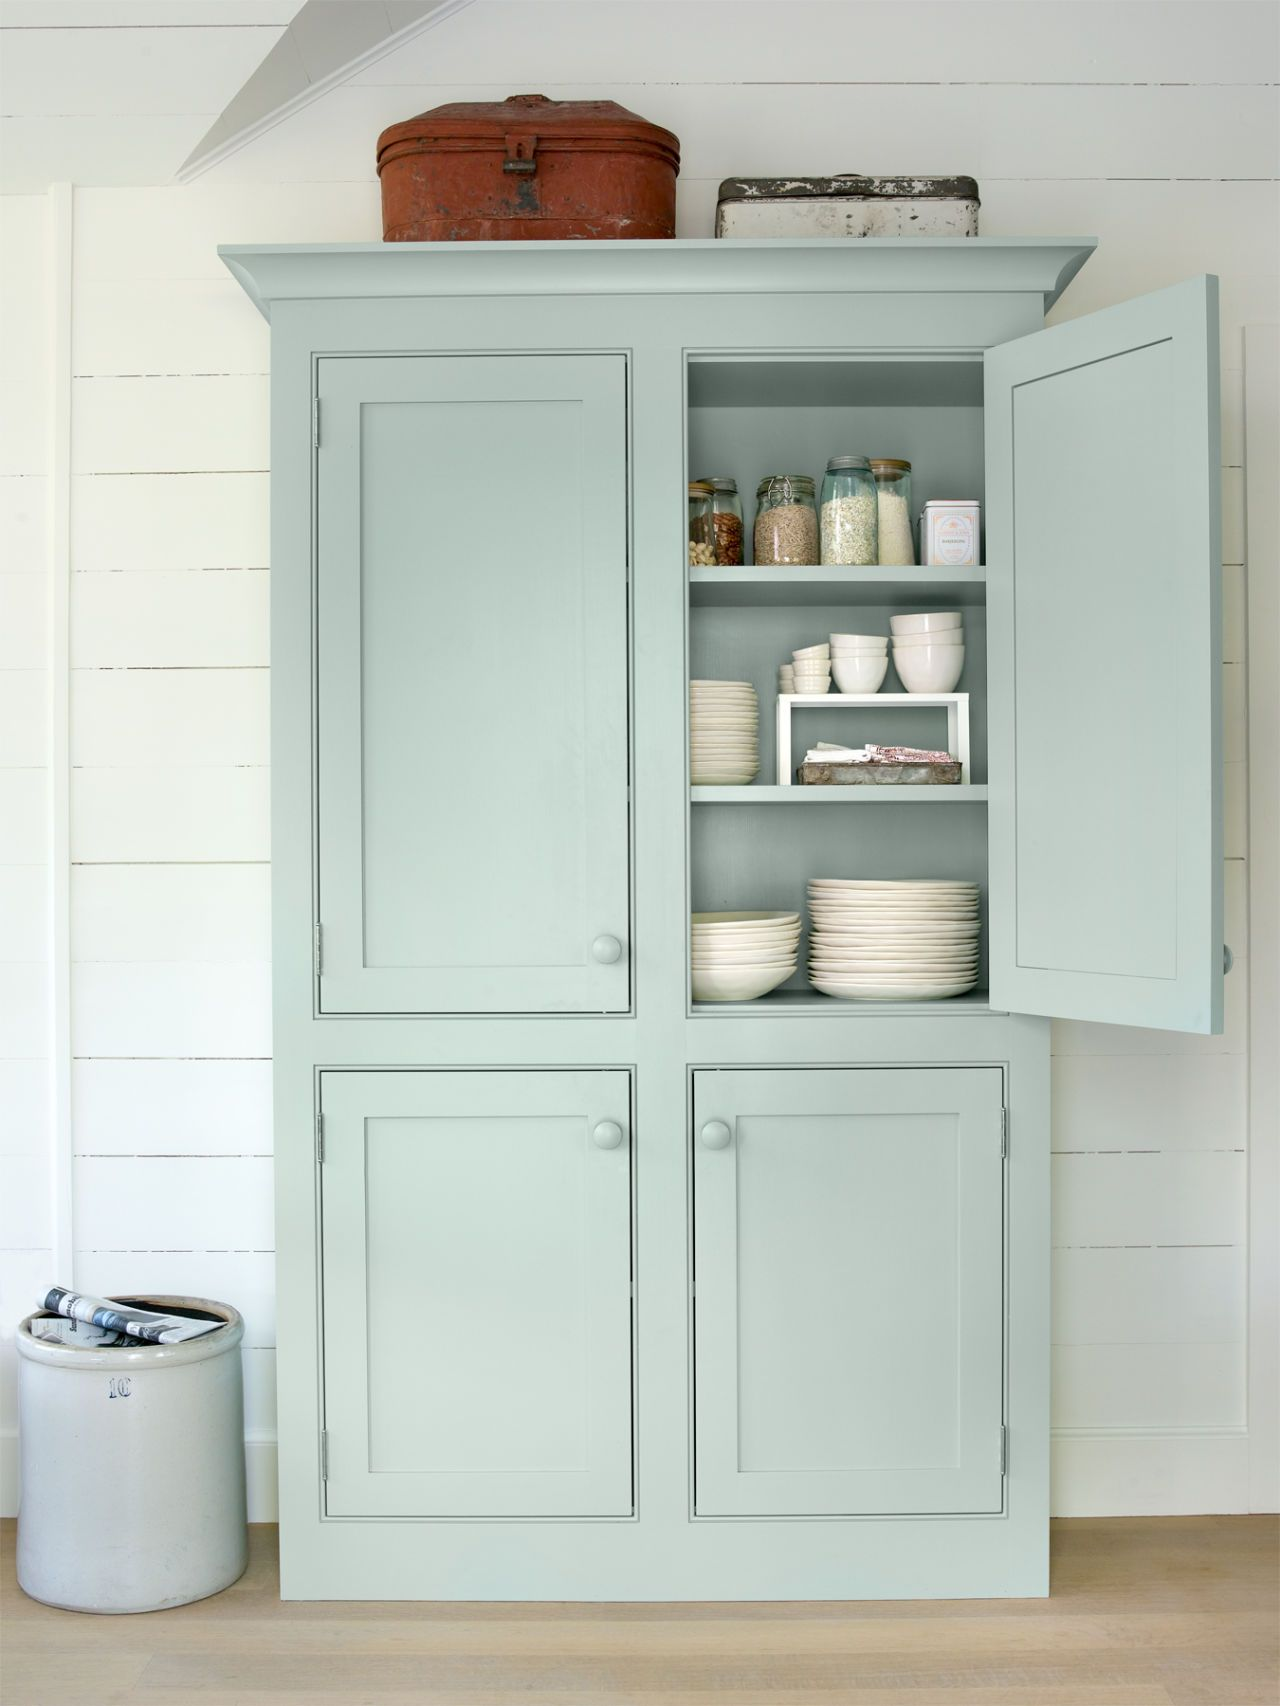 Best Kitchen Gallery: 41 Easy Breezy Beach House Decorating Ideas Armoires Mint Decor of Kitchen Armoire Cabinets on cal-ite.com